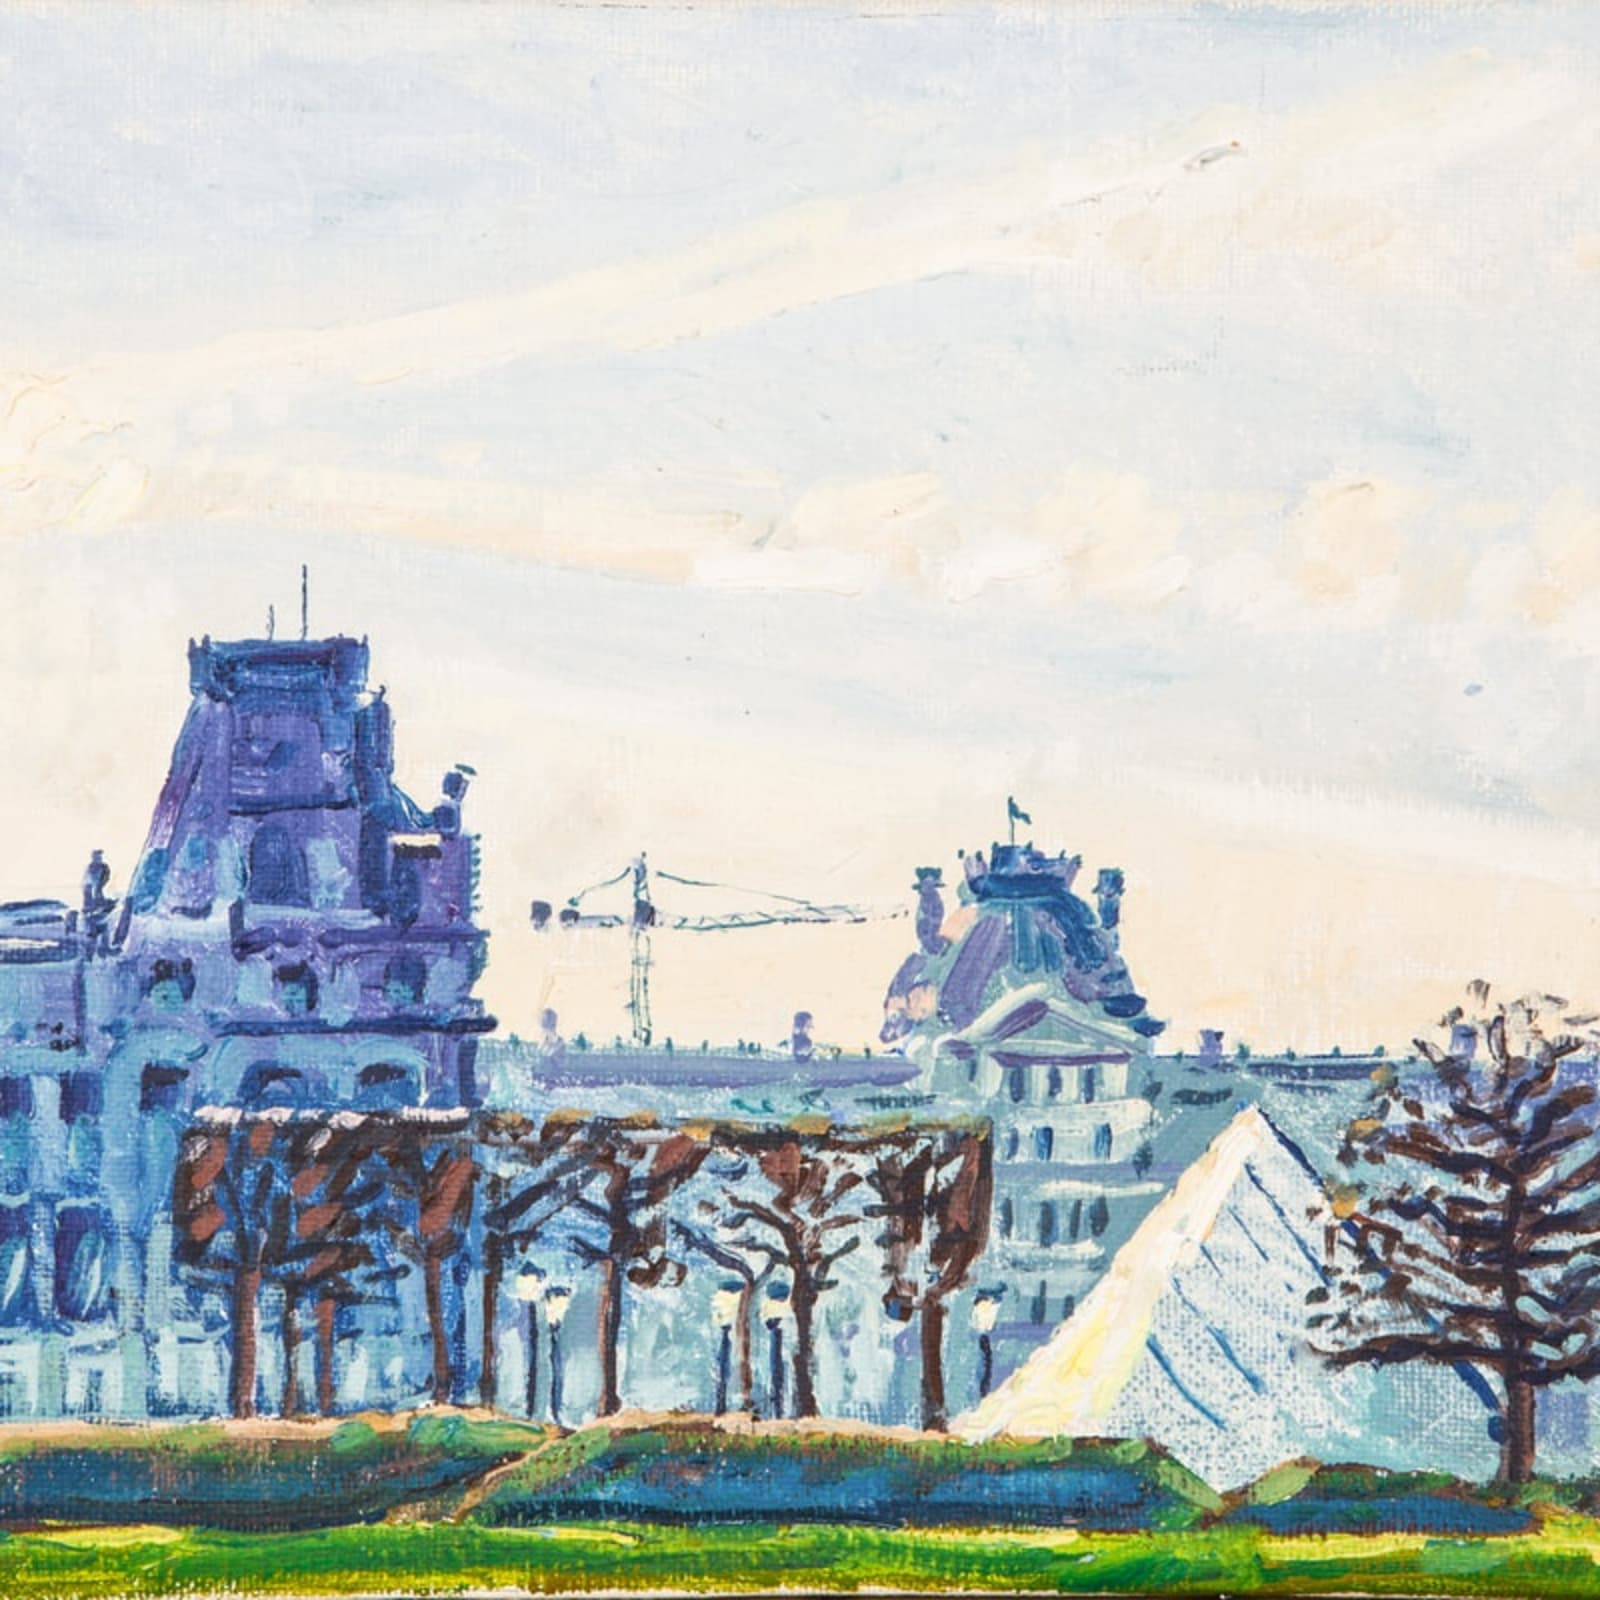 M1 FINE ART HOSTS 'THE ROYAL INSTITUTE OF OIL PAINTERS'